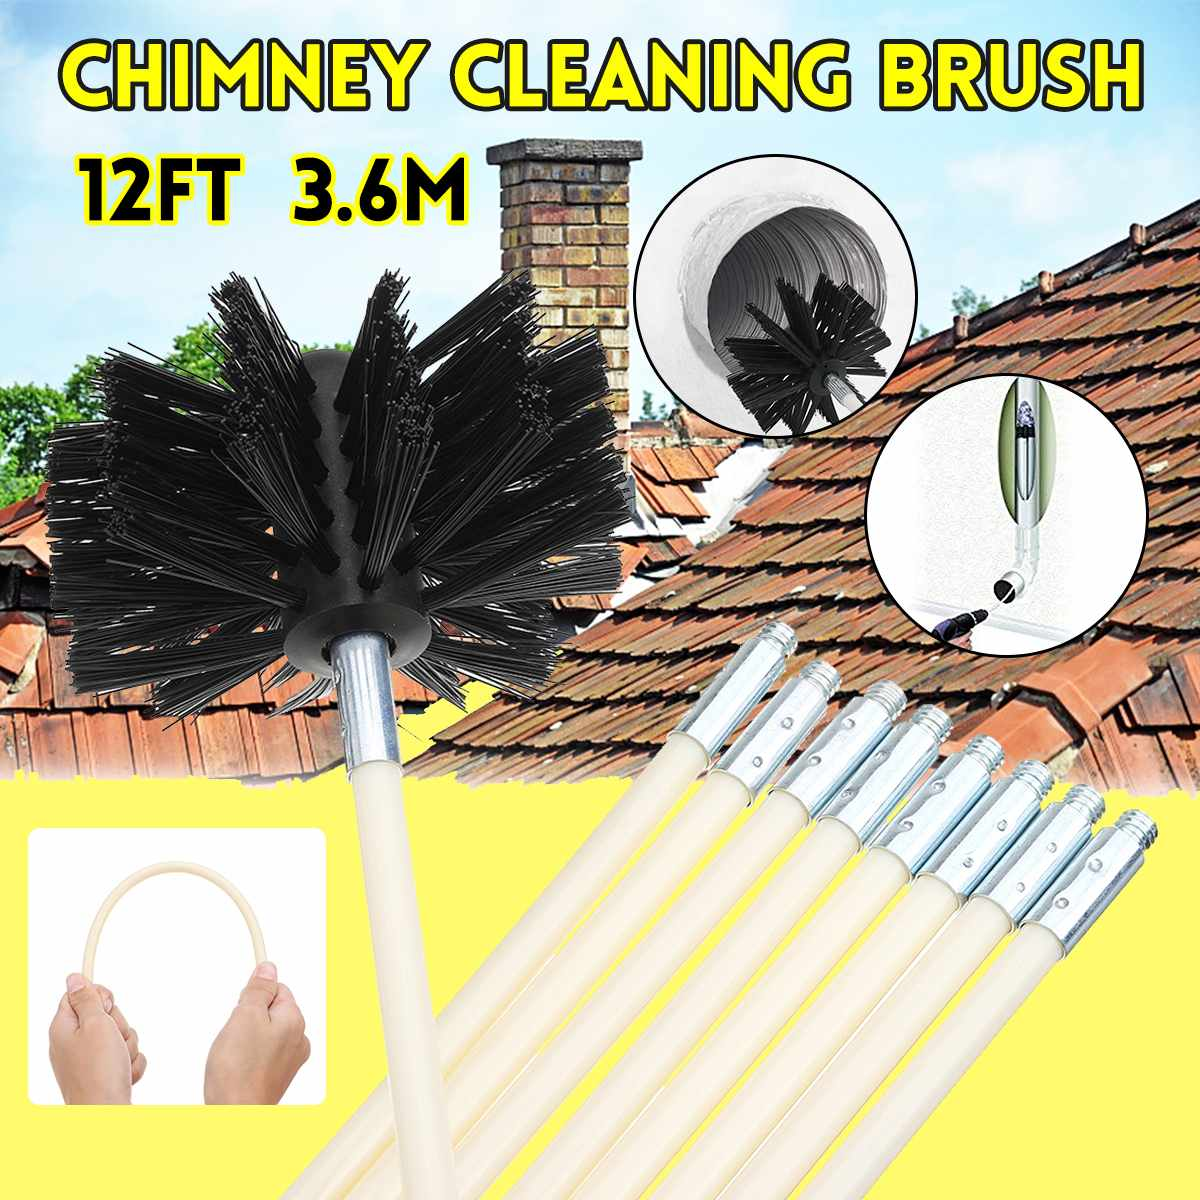 Chimney Cleaning Nylon Brush Long Handle Flexible Pipe Rod For Fireplace Kettle Household Sweeper Cleaner Home Cleaning Tool Set